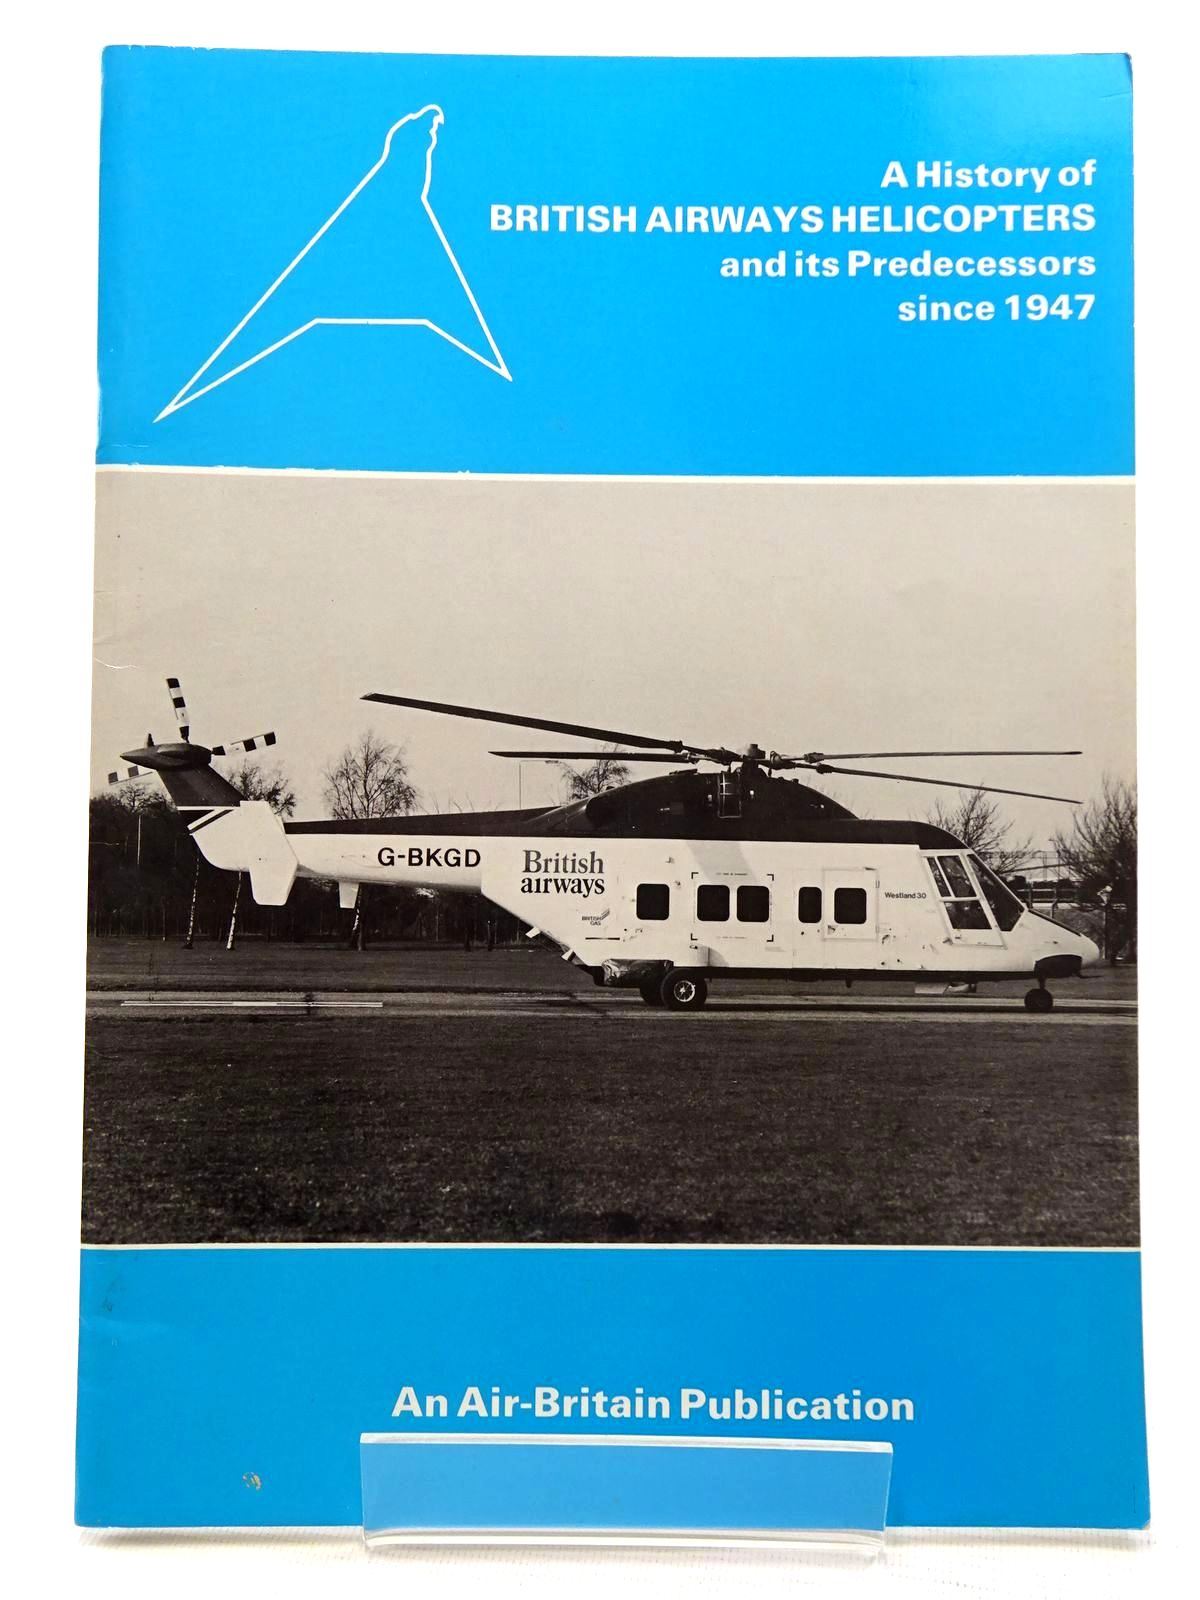 Photo of A HISTORY OF BRITISH AIRWAYS HELICOPTERS AND ITS PREDECESSORS SINCE 1947 written by Bao, P. Lo published by Air-Britain (Historians) Ltd. (STOCK CODE: 1610465)  for sale by Stella & Rose's Books